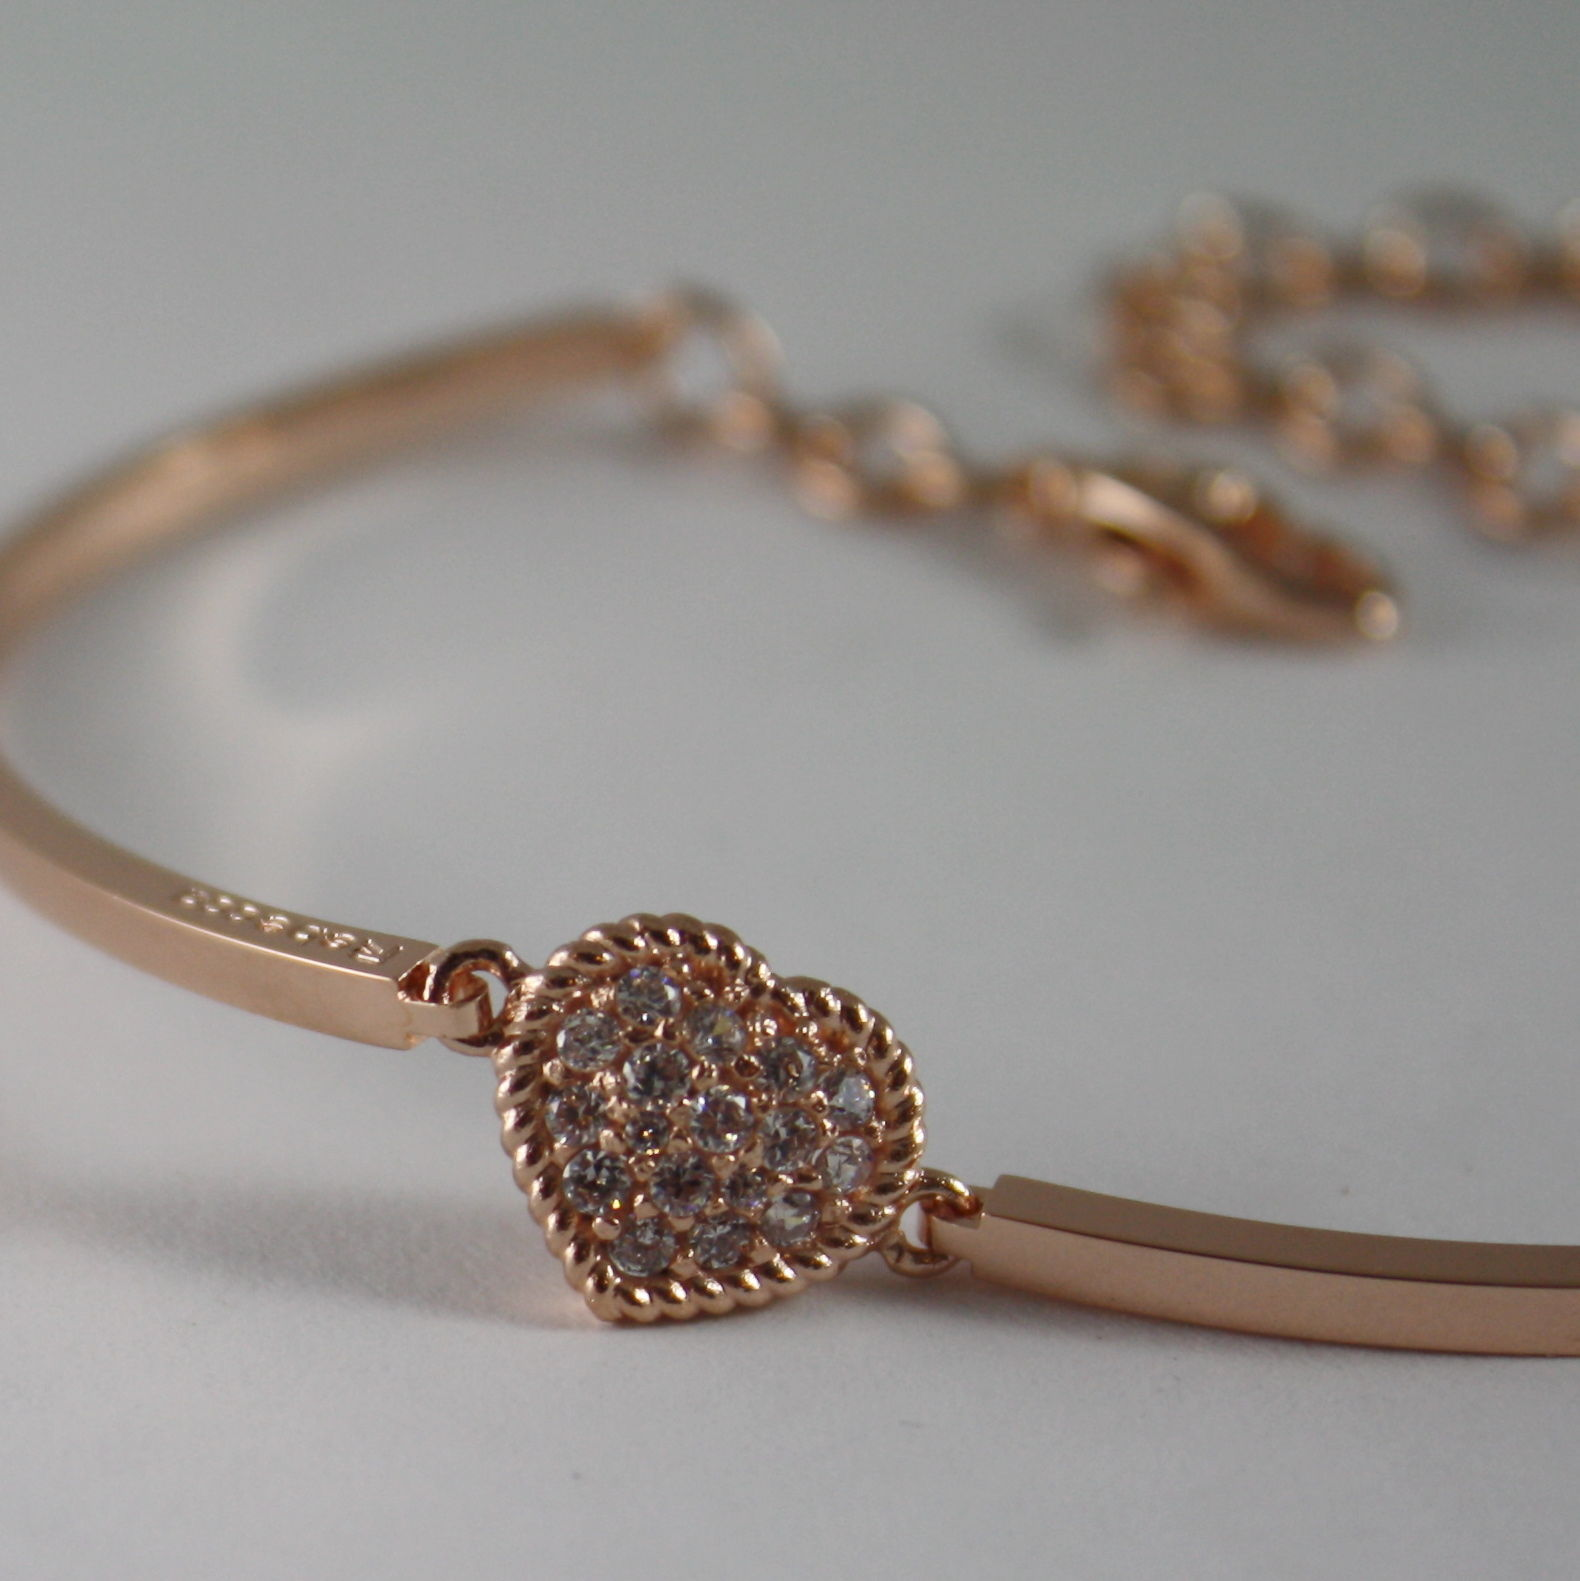 ROSE BRONZE BRACELET SEMI RIGID TENNIS HEART B14BRB04, BY REBECCA MADE IN ITALY